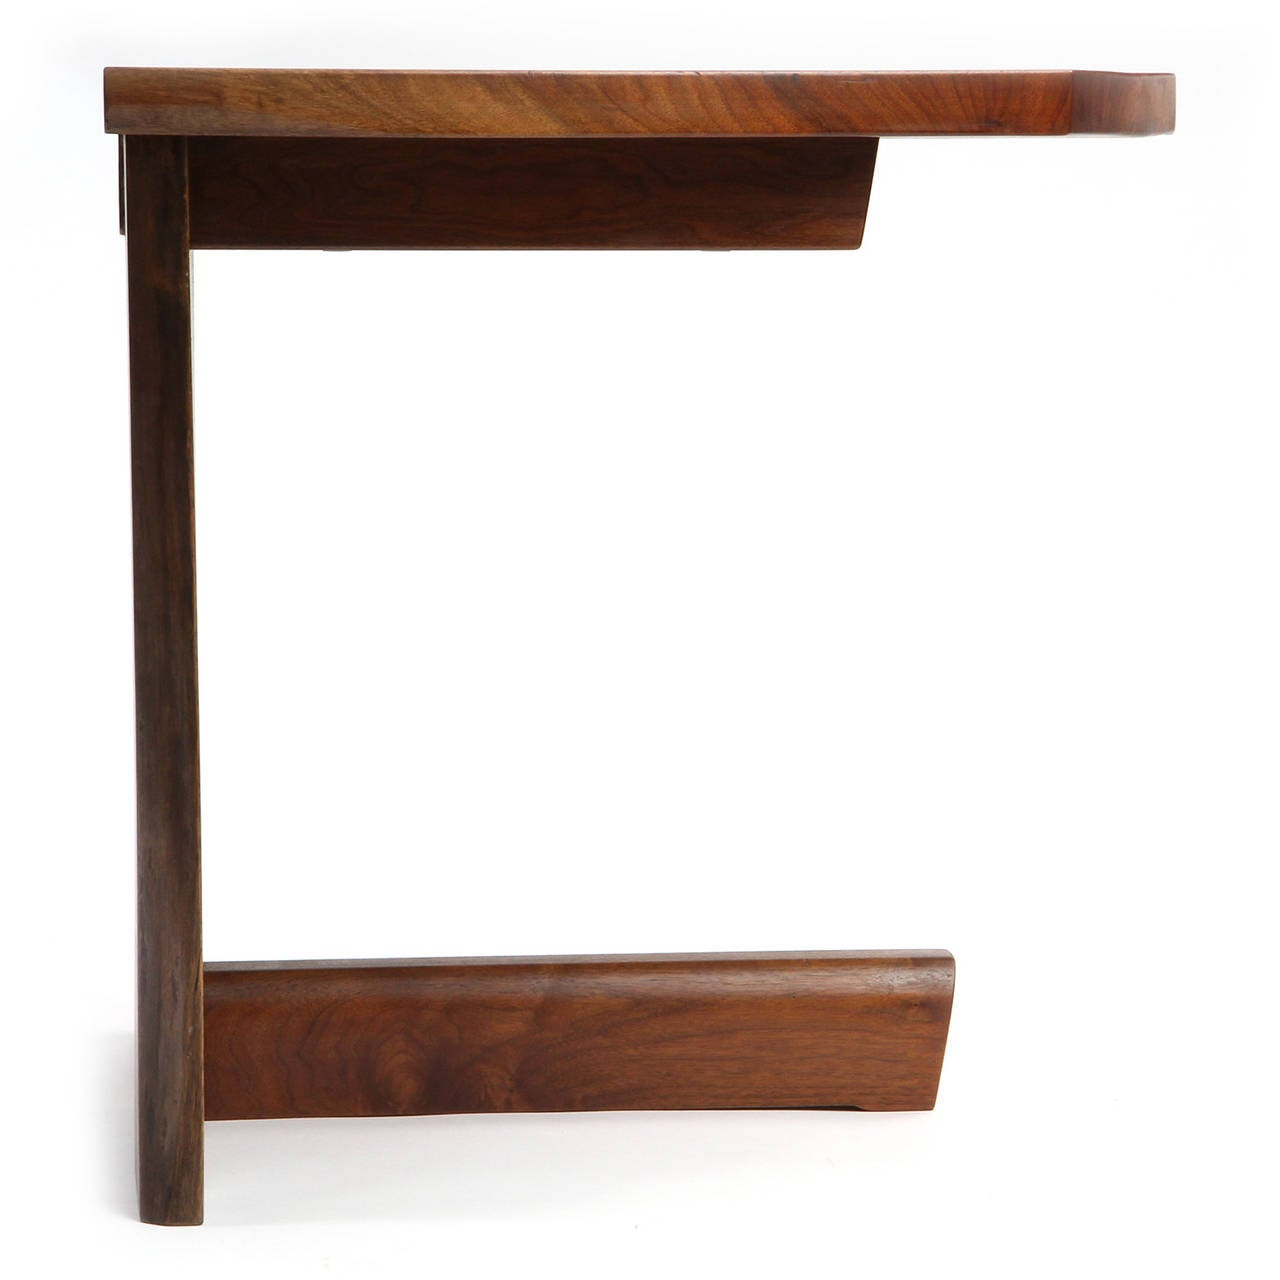 Unique end table by george nakashima image 2 for Unique end tables